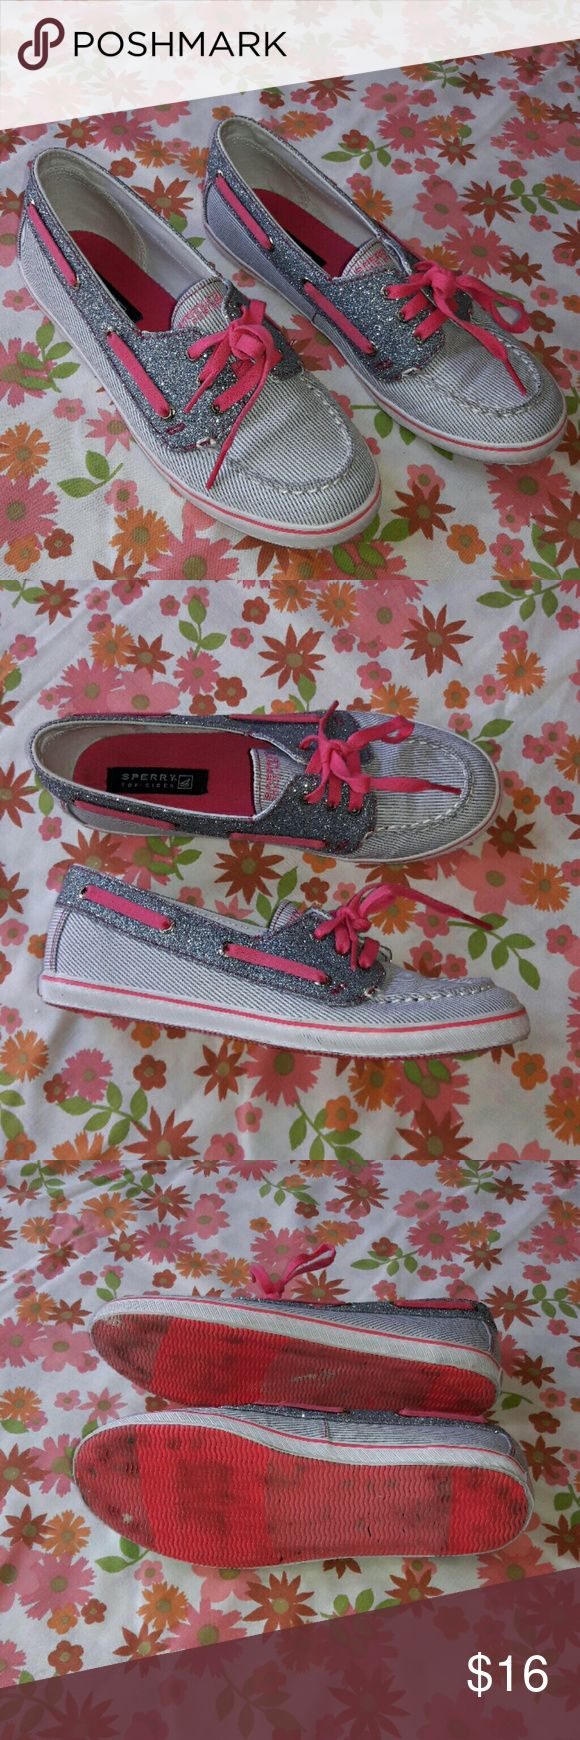 Women's Sperry Top-sider size 5 Adorable women's Sperry Top-sider in a size 5. These are a thin blue and white striped canvas with contrasting blue glitter and pink detailing such as laces and a pink stripe around the sole. They are in good used condition with no stains or tears. The soles show very little wear to the traction. Please ask any questions as all sales are final. From a smoke free home. Sperry Top-Sider Shoes